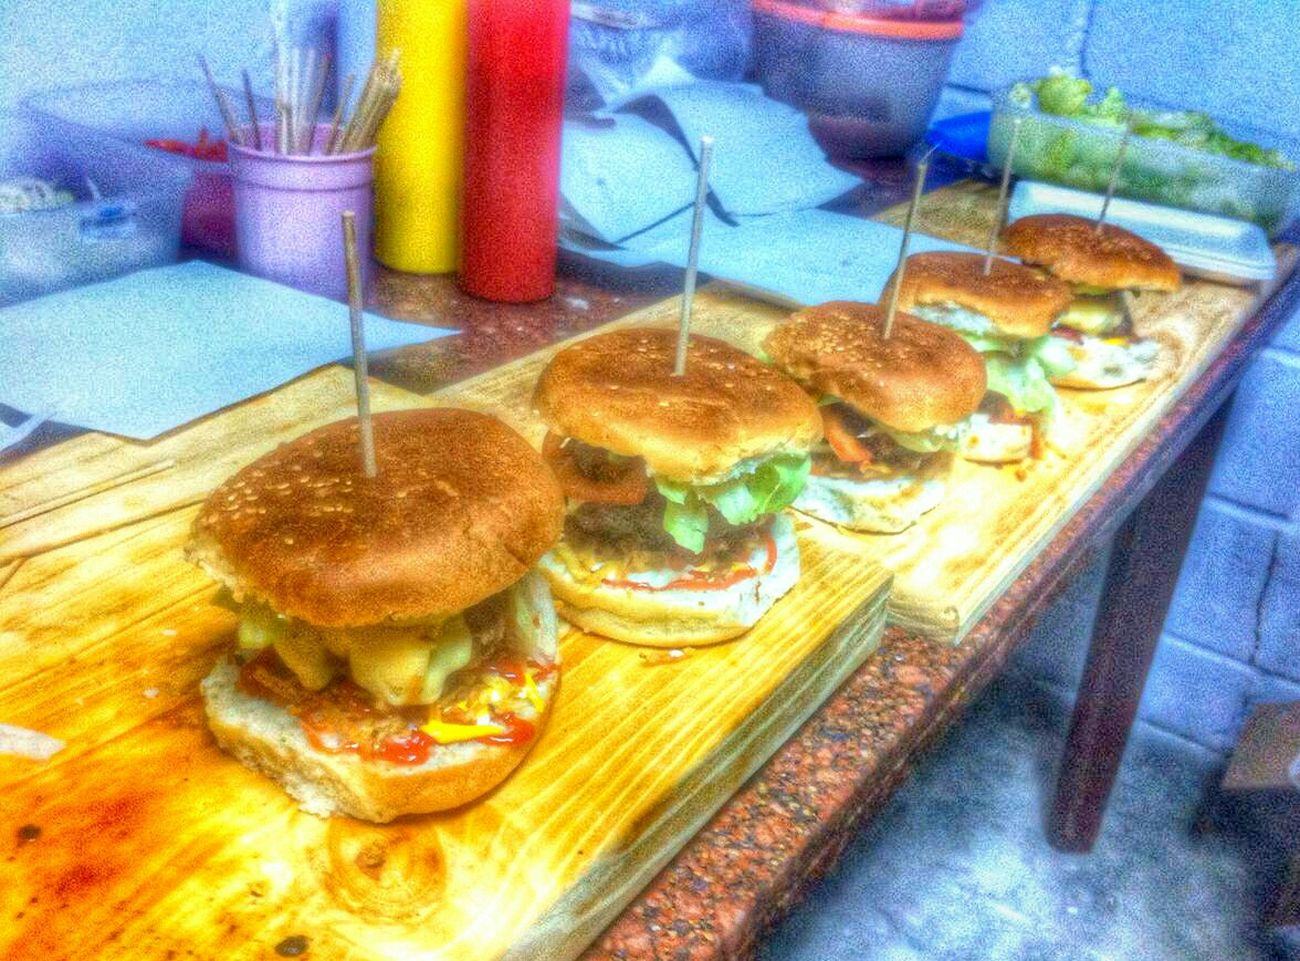 🍔 Food Burguer Burguers Indoors  No People Sweet Food Freshness Indulgence Multi Colored Variation Food And Drink Table Temptation Close-up Ready-to-eat Day EyeEm The Week Of Eyeem Photography Amazing EyeEmBestPics EyeEm Best Shots Maximum Closeness Focusing Blur